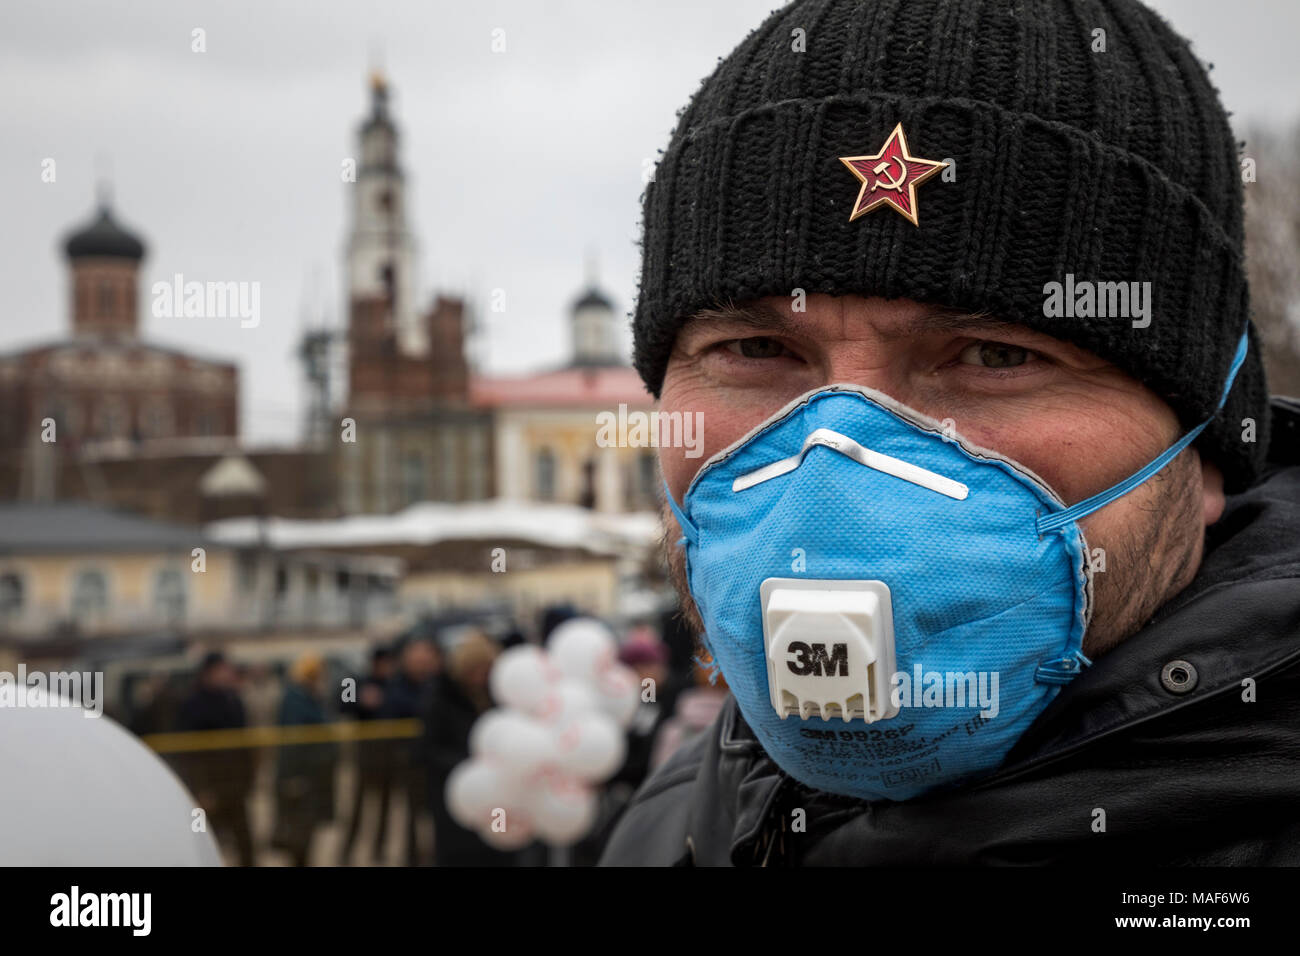 A resident of Volokolamsk, Moscow Region takes part in a rally in the Volokolamsk town hall demanding the closure of the Yadrovo domestic waste landfi - Stock Image